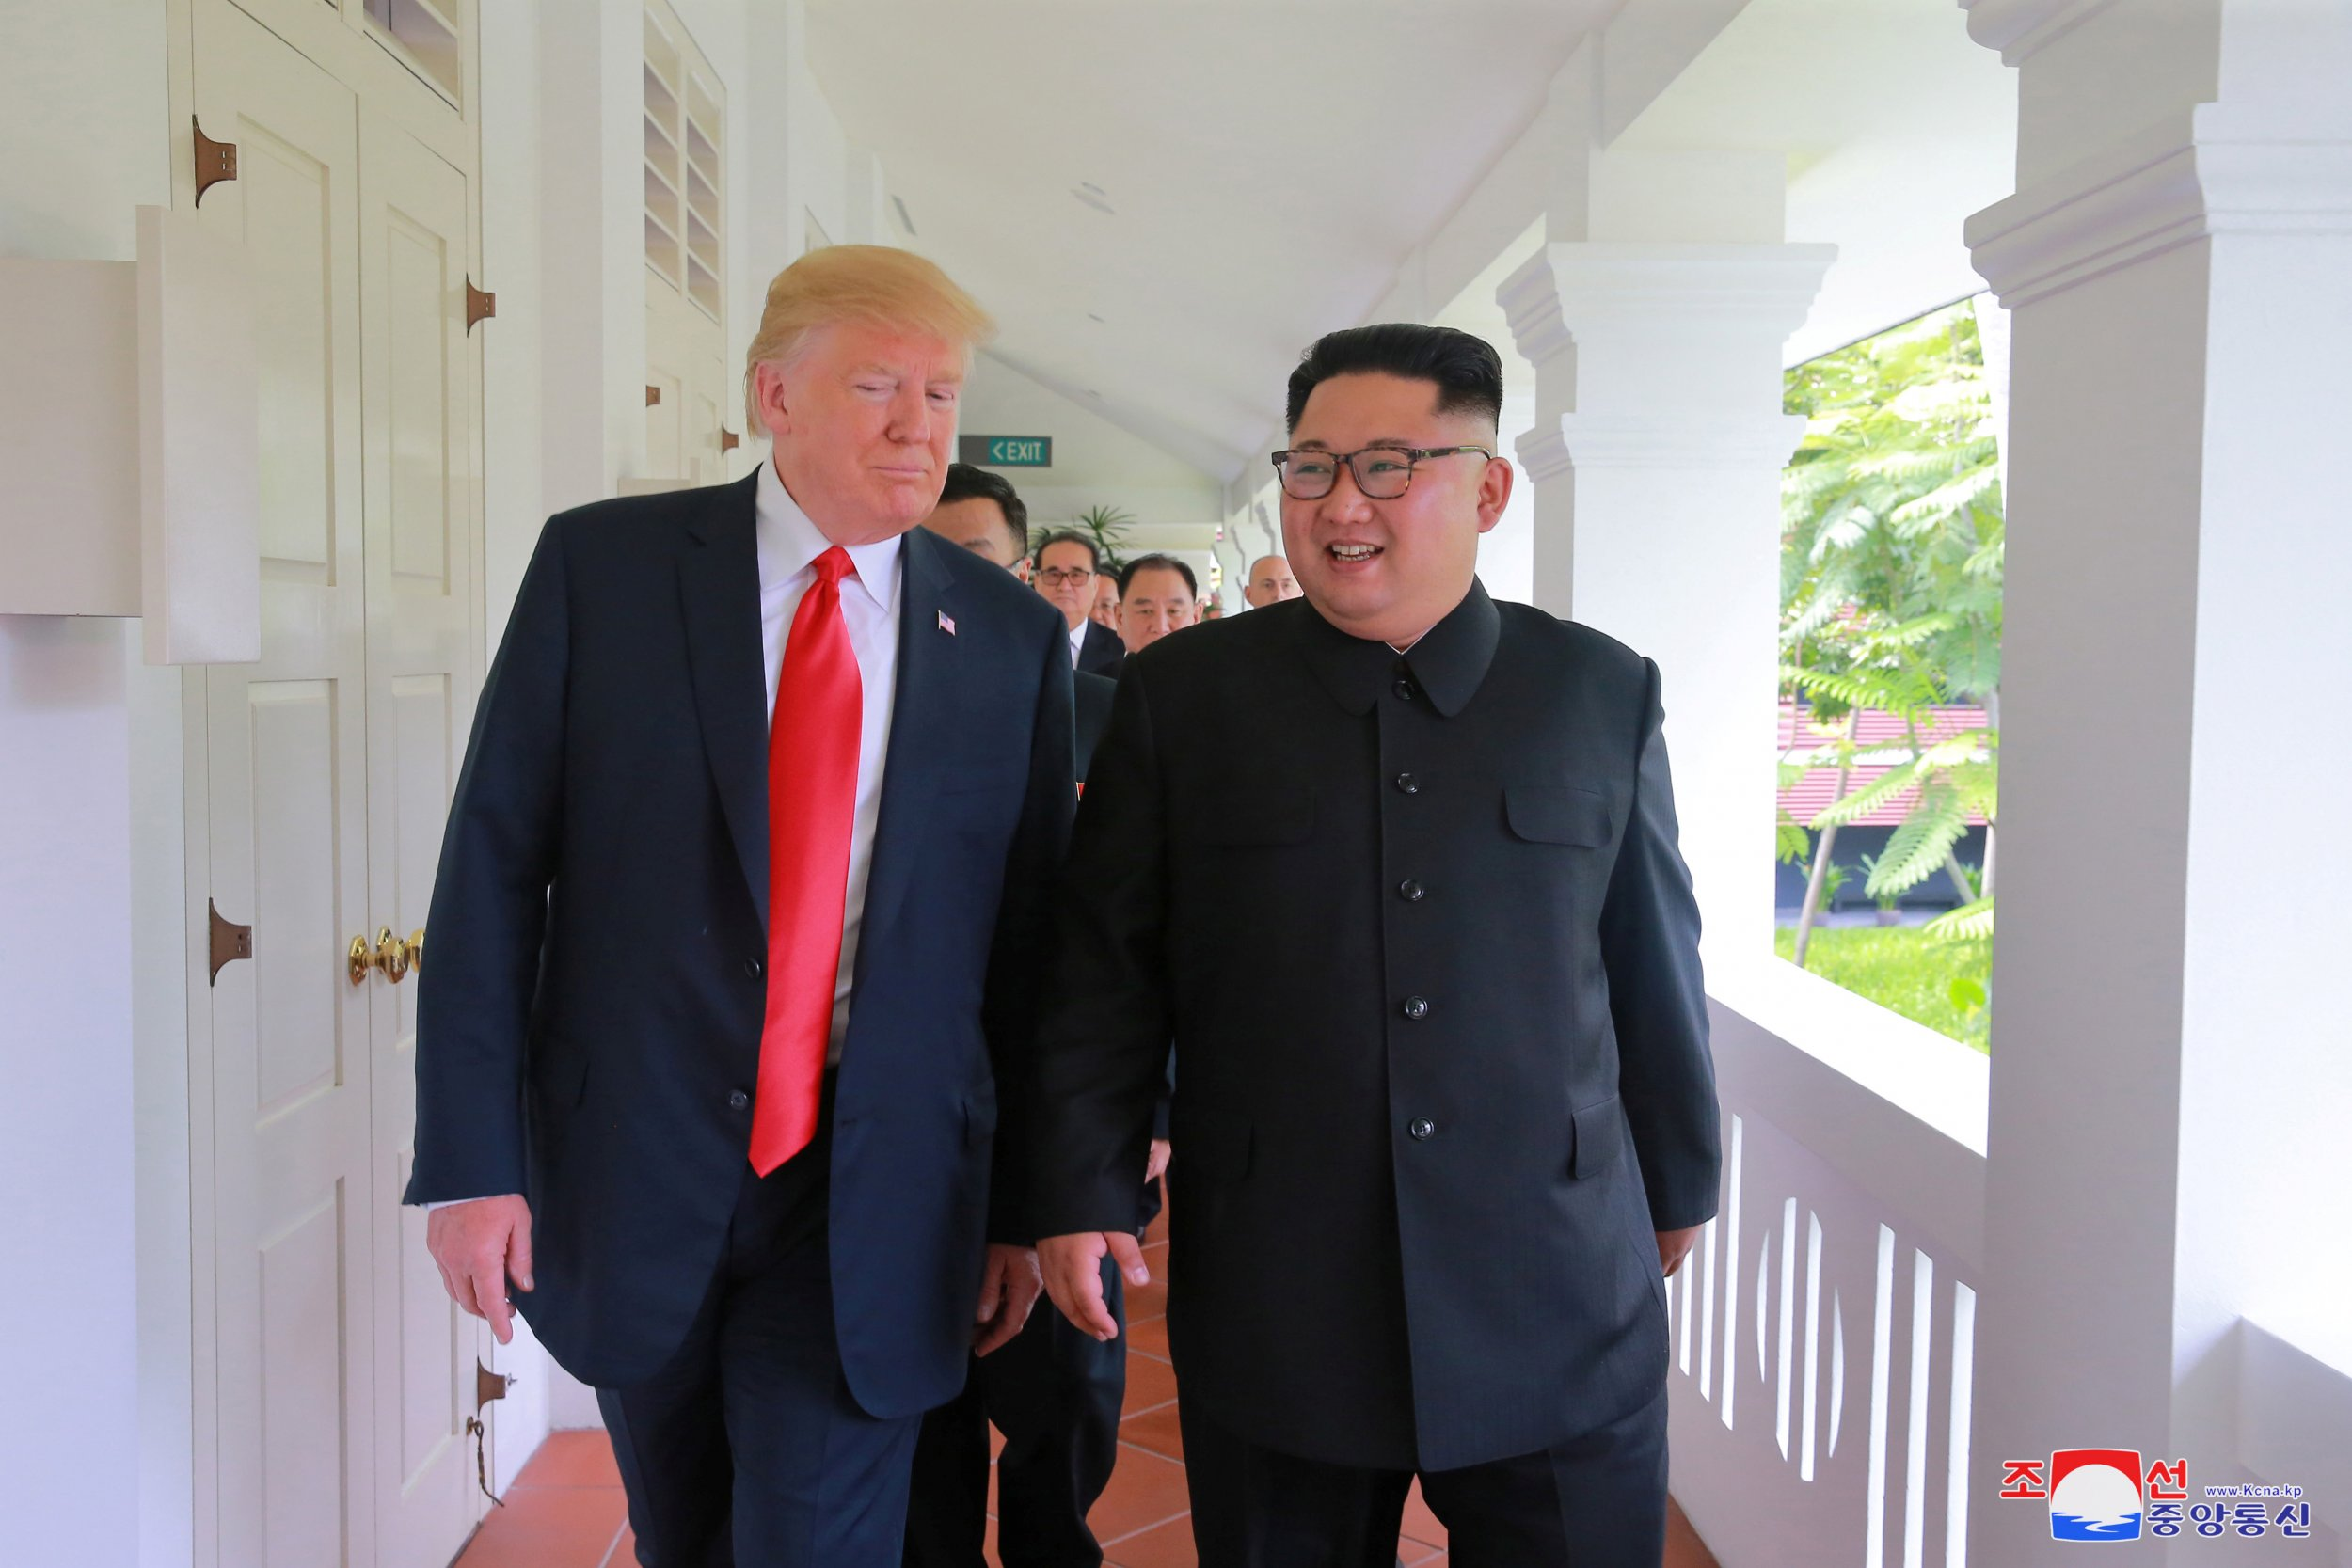 U.S. President Donald Trump walks with North Korean leader Kim Jong Un at the Capella Hotel on Sentosa island in Singapore in this picture released on June 12